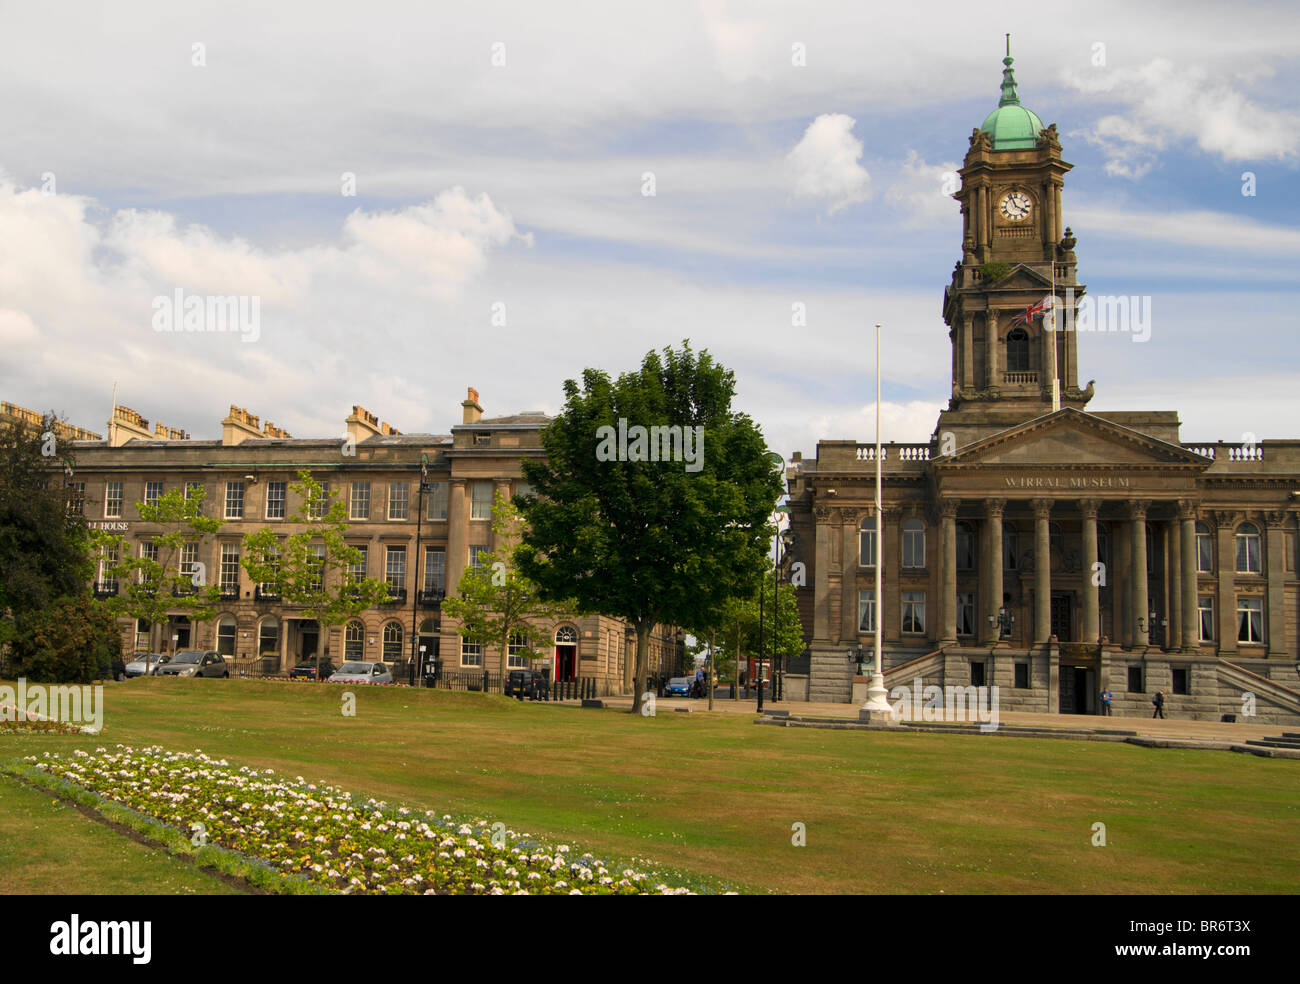 Hamilton Square and Birkenhead Town Hall which is now the Wirral Museum. - Stock Image